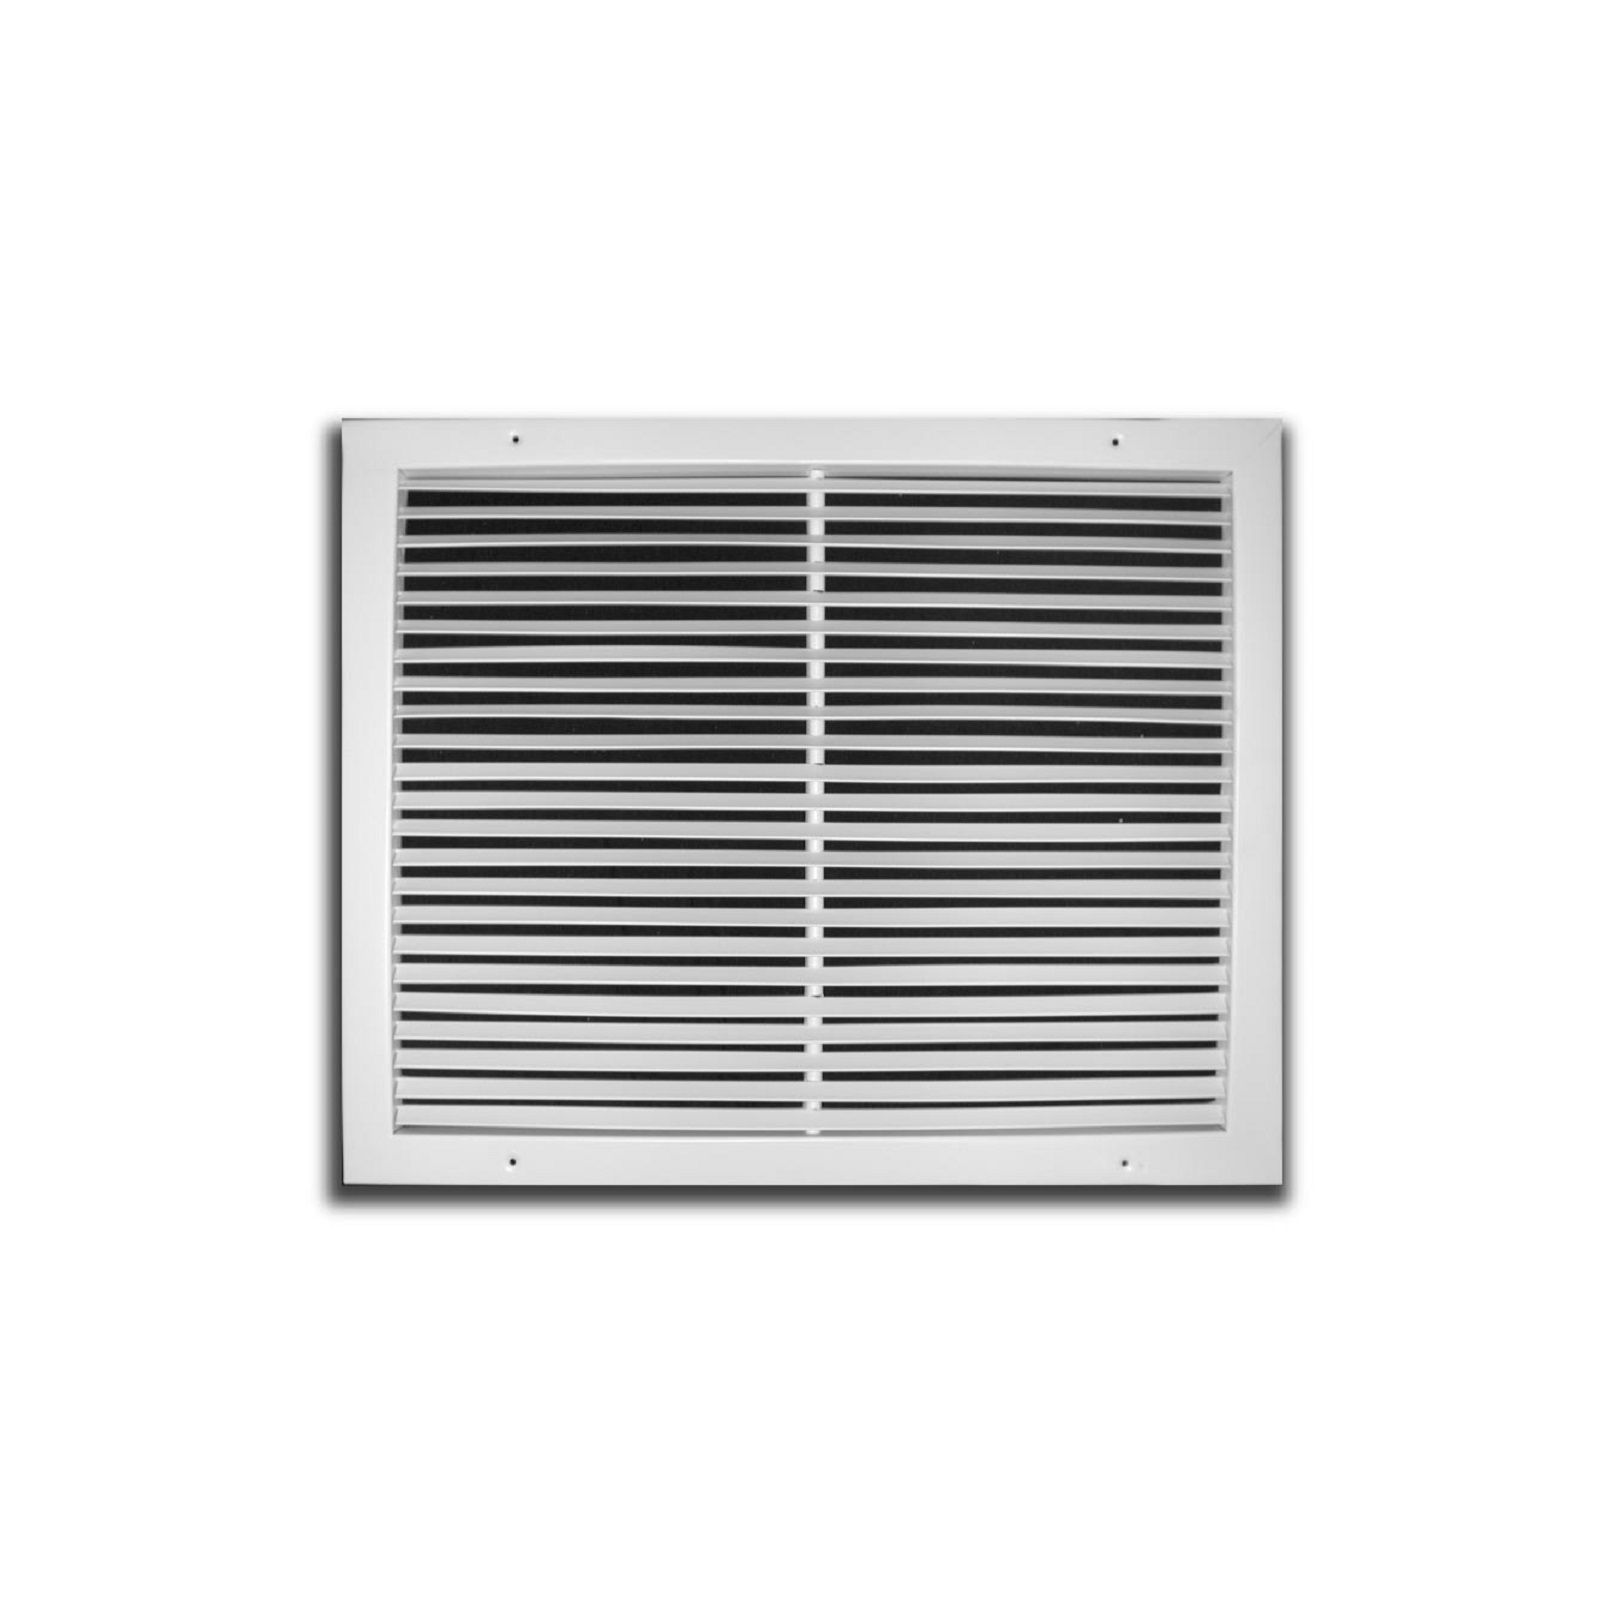 "TRUaire 270 24X12 - Steel Fixed Bar Return Air Grille, White, 24"" X 12"""